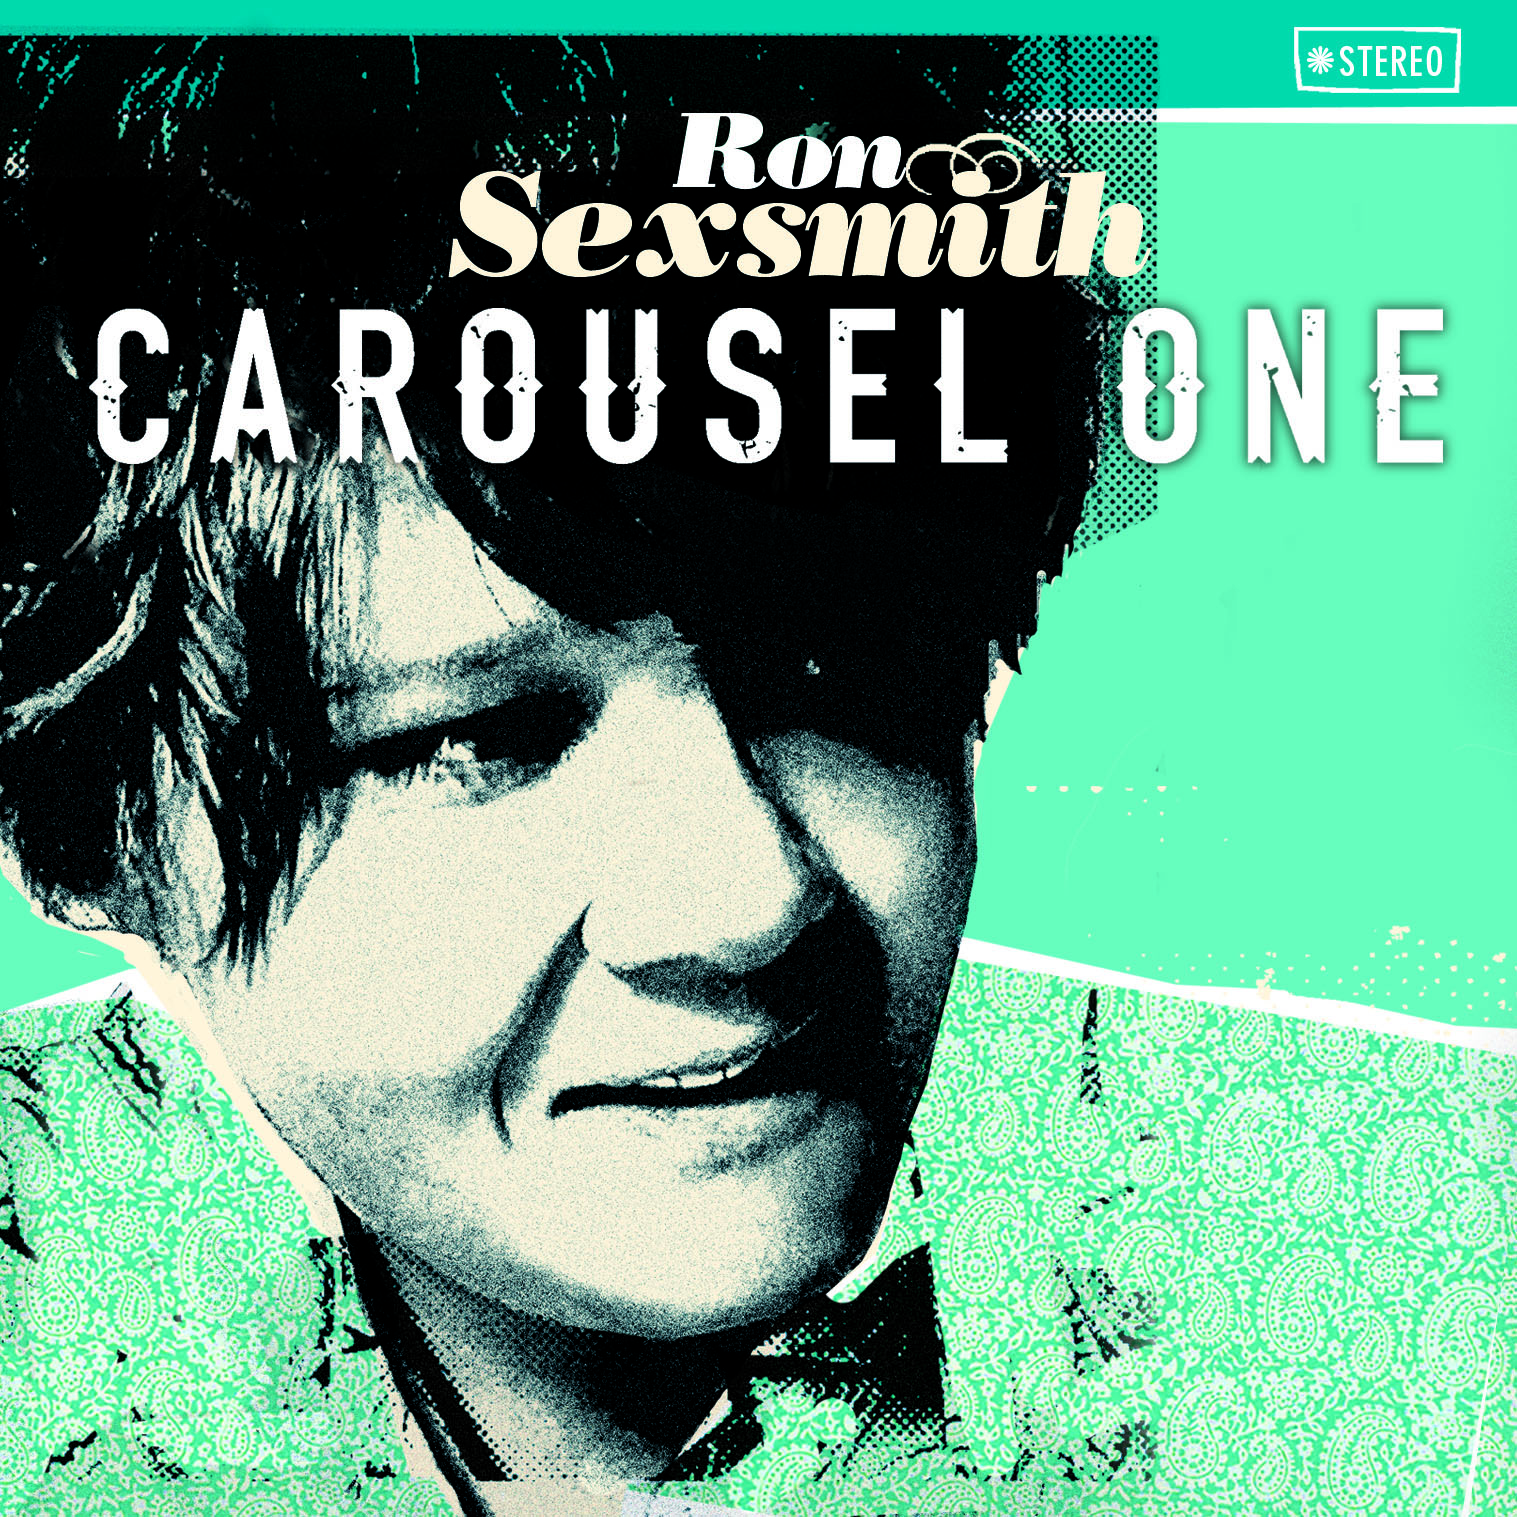 Carousel One - Ron Sexsmith - Musik - Cooking Vinyl - 0711297511321 - March 30, 2015